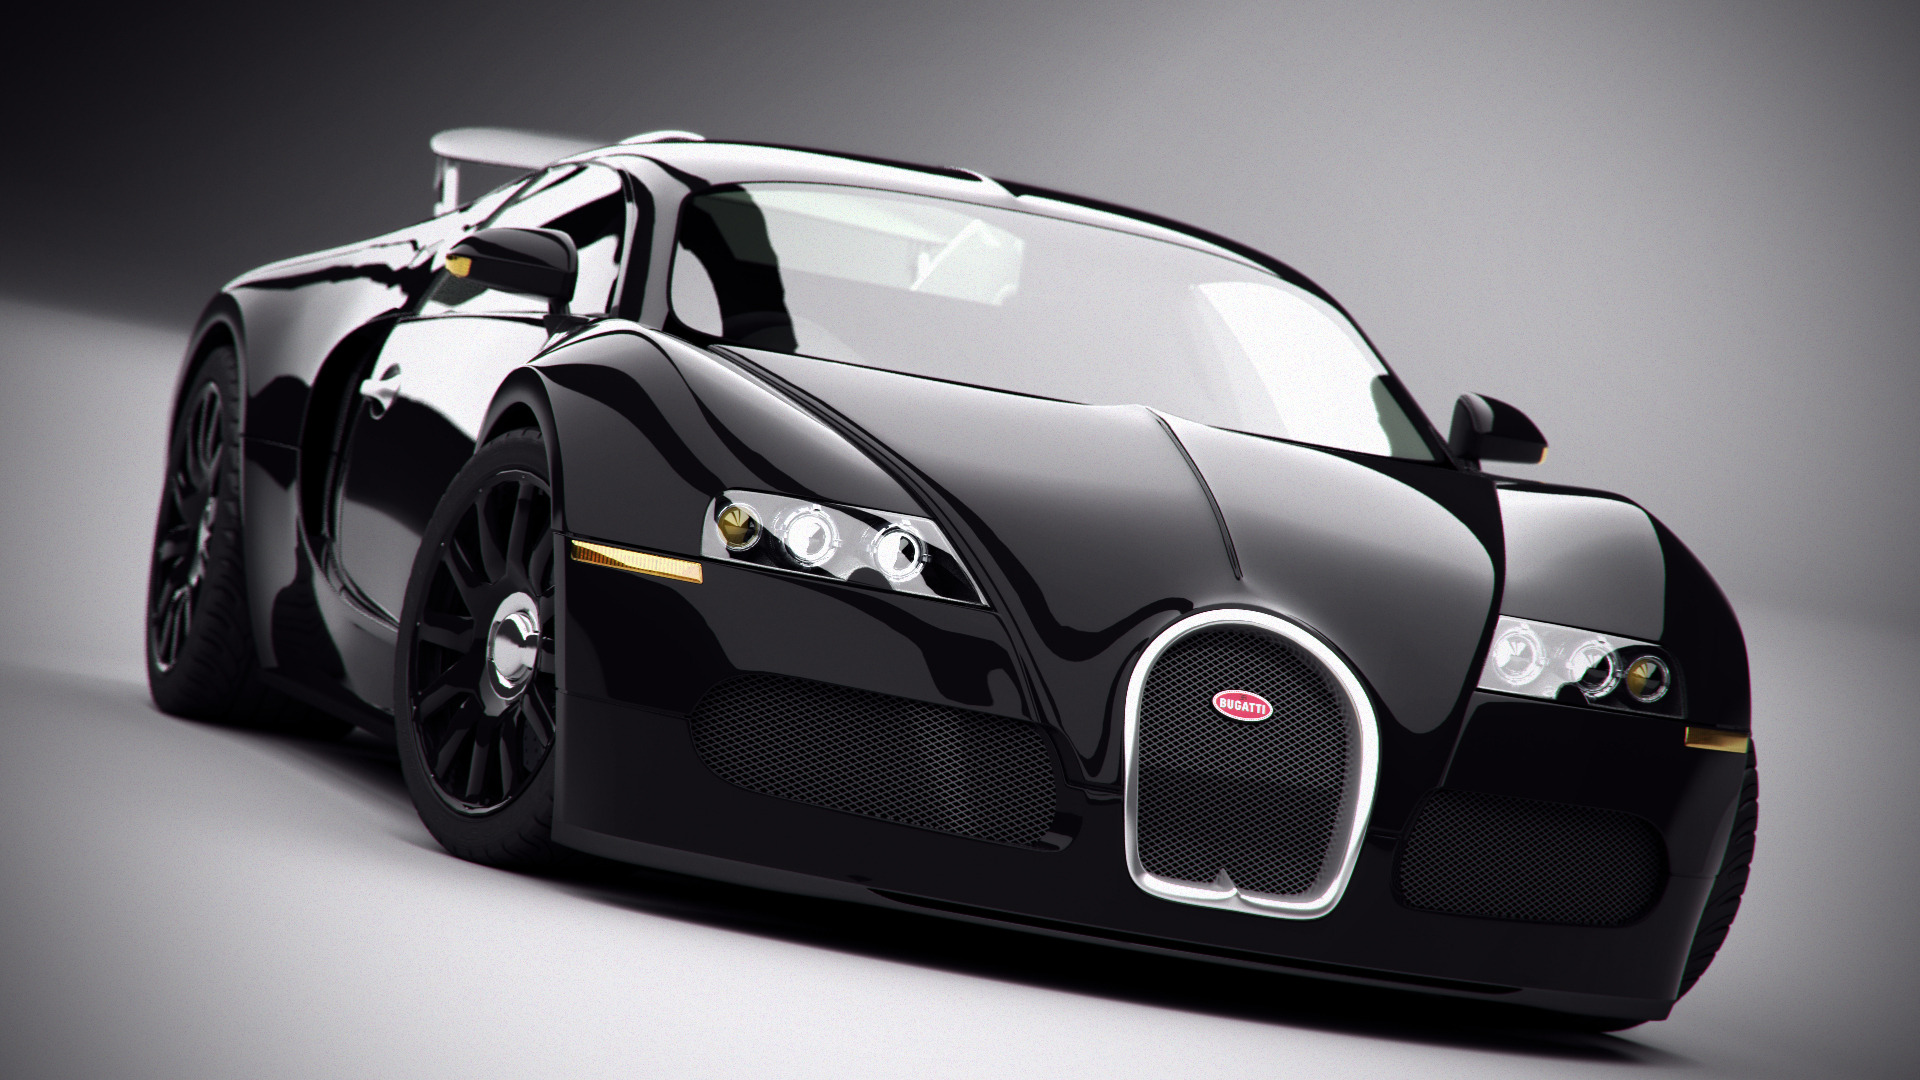 [49+] Black Sports Car Wallpaper On WallpaperSafari